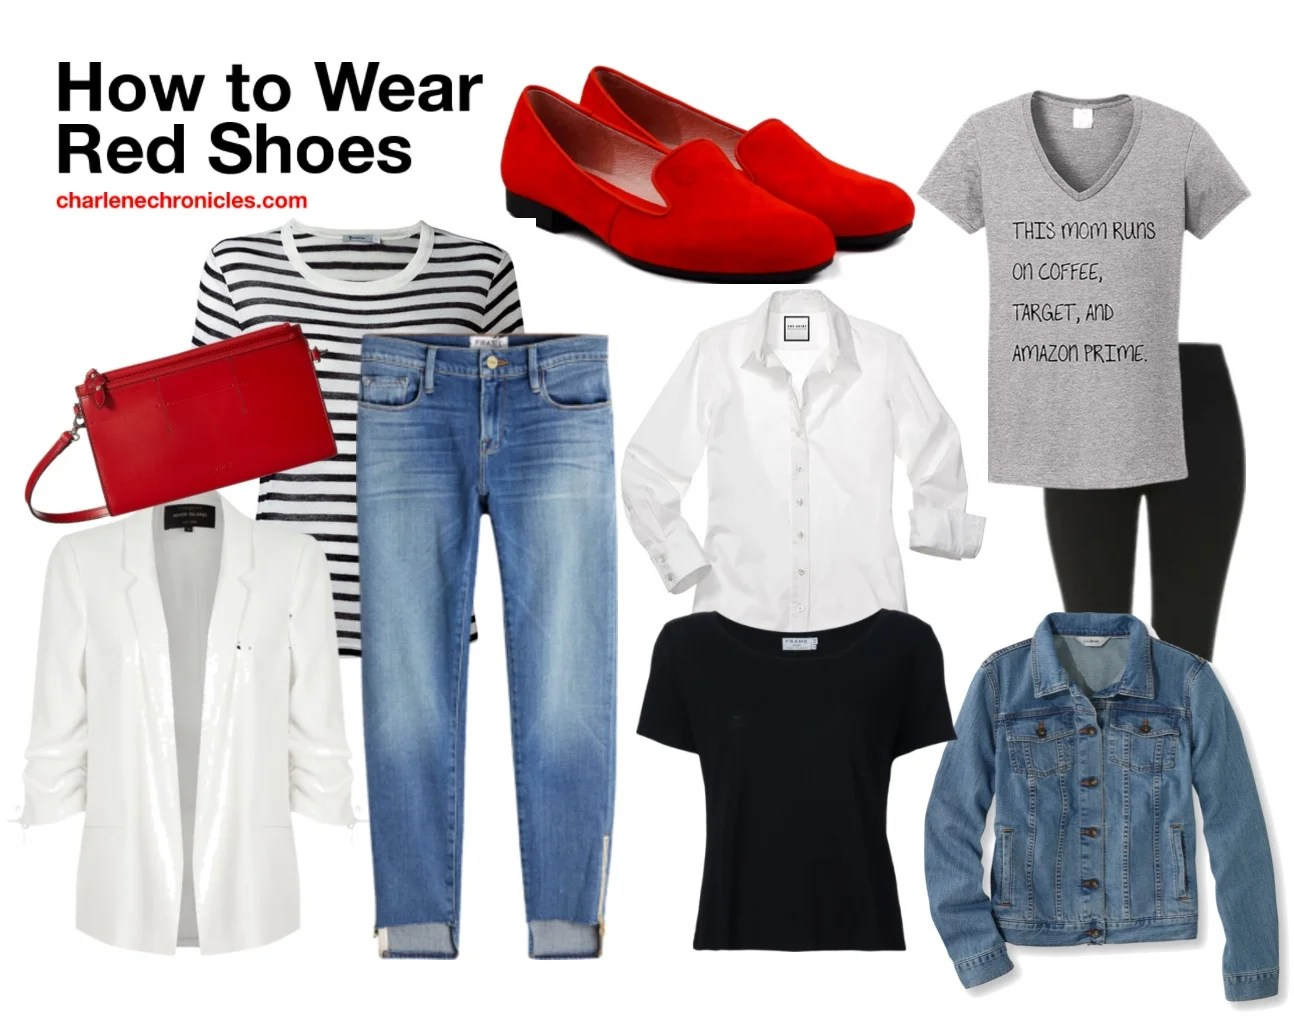 How to shoes red wear with jeans